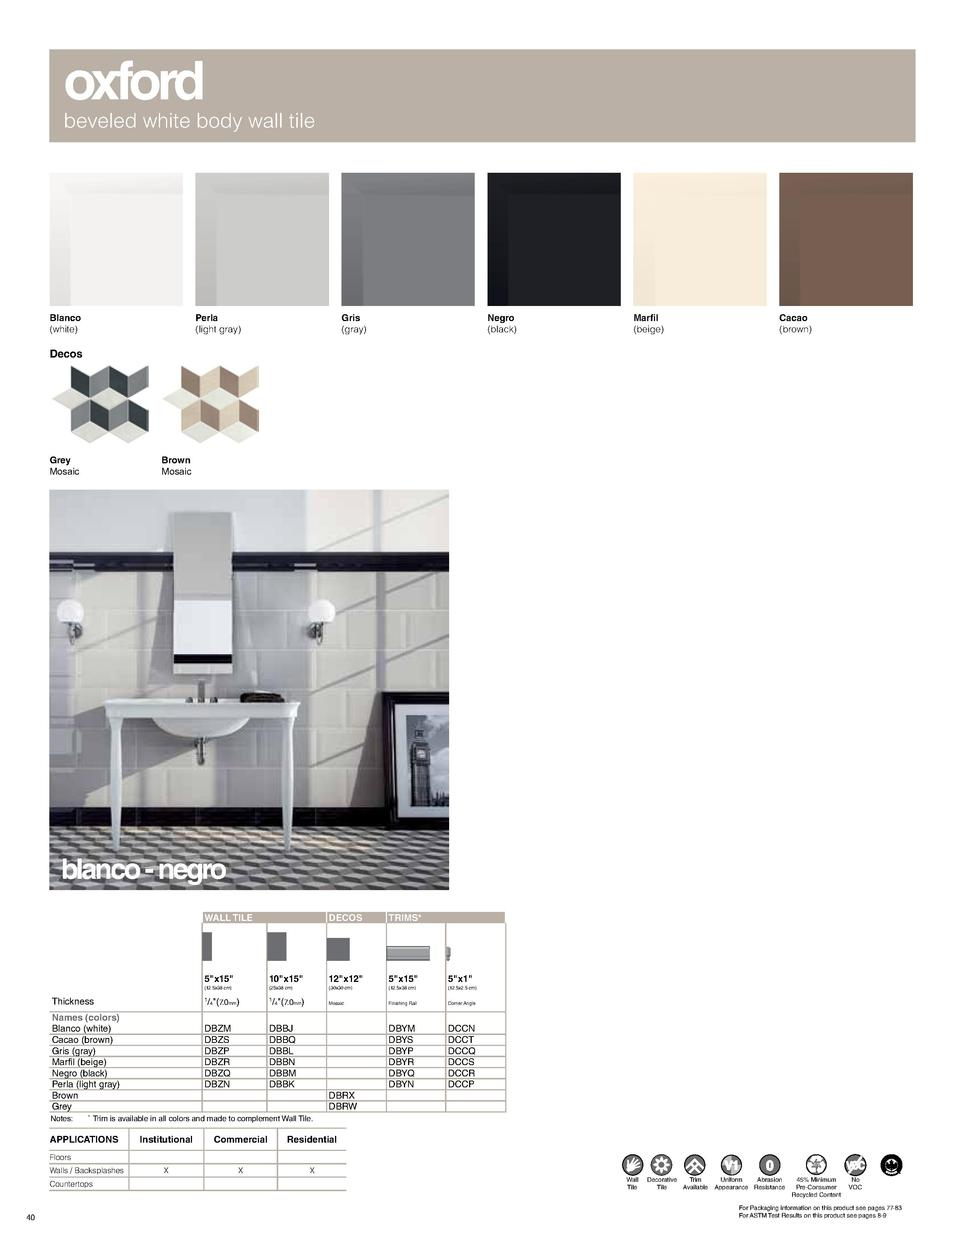 oxford  beveled white body wall tile  Blanco  white   Perla  light gray   Gris  gray   Negro  black   Marfil  beige   Caca...